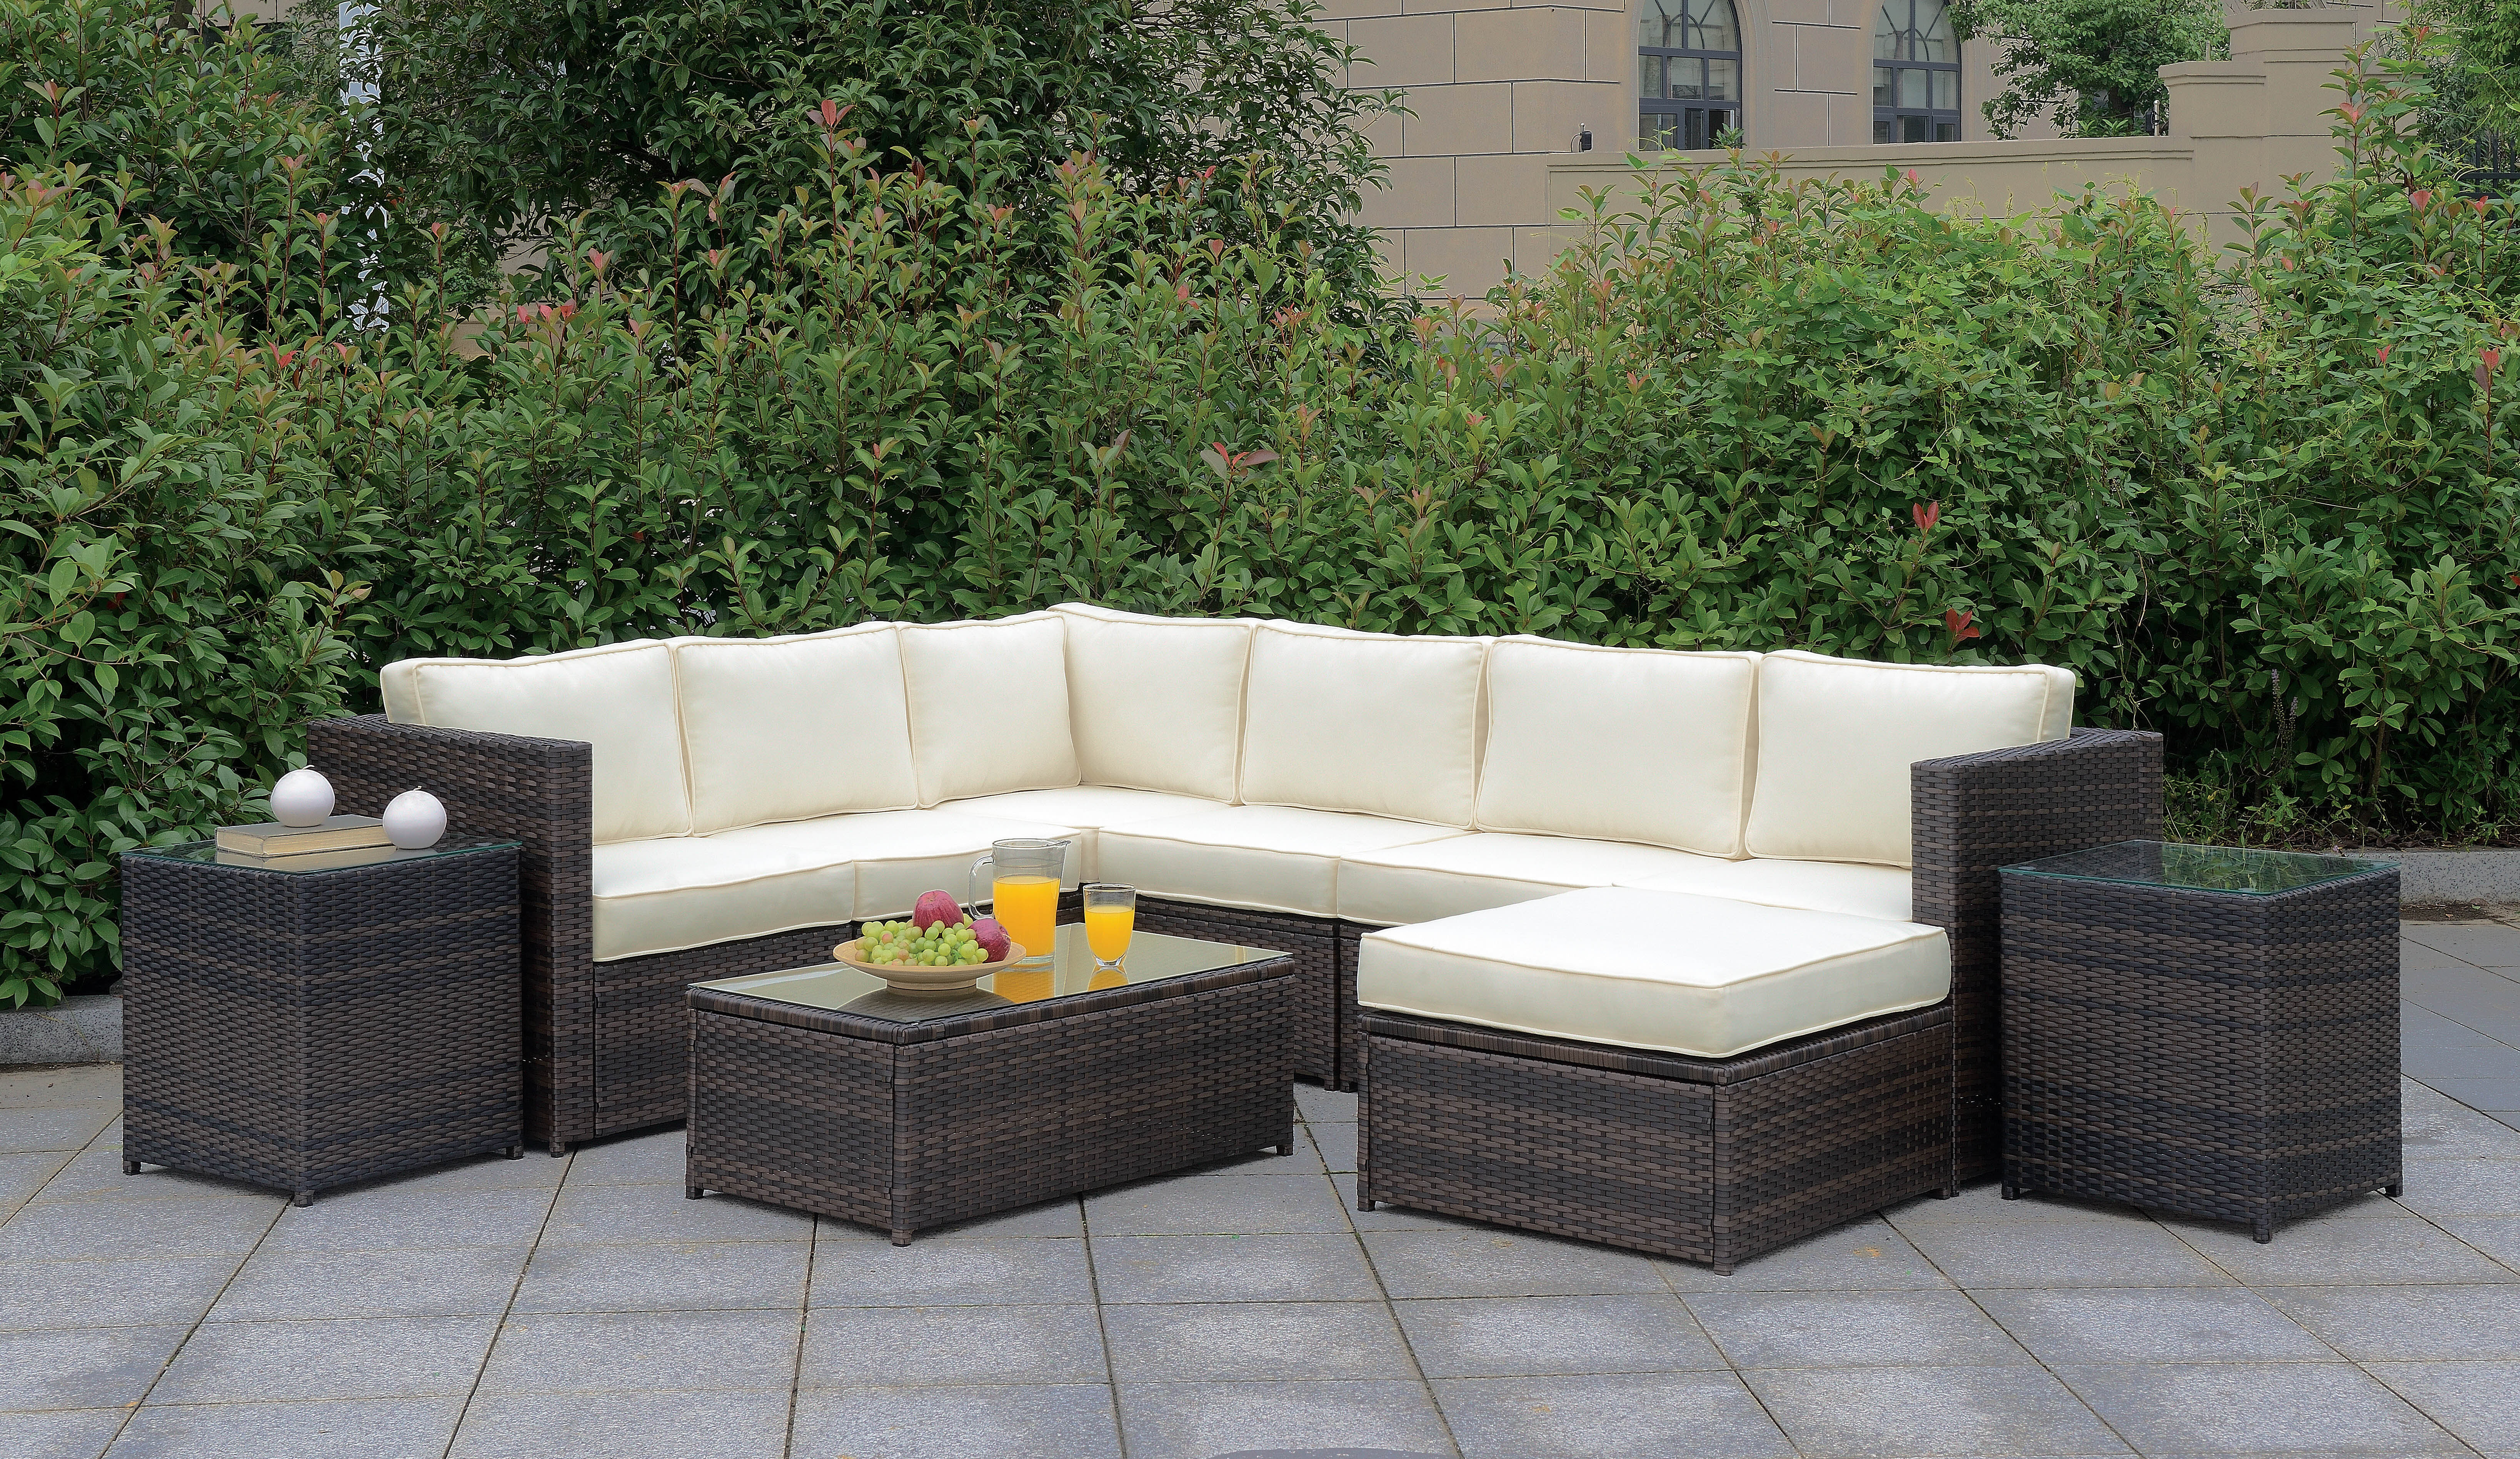 Ebern Designs Morrell 10 Piece Complete Patio Set With Cushions Reviews Wayfair